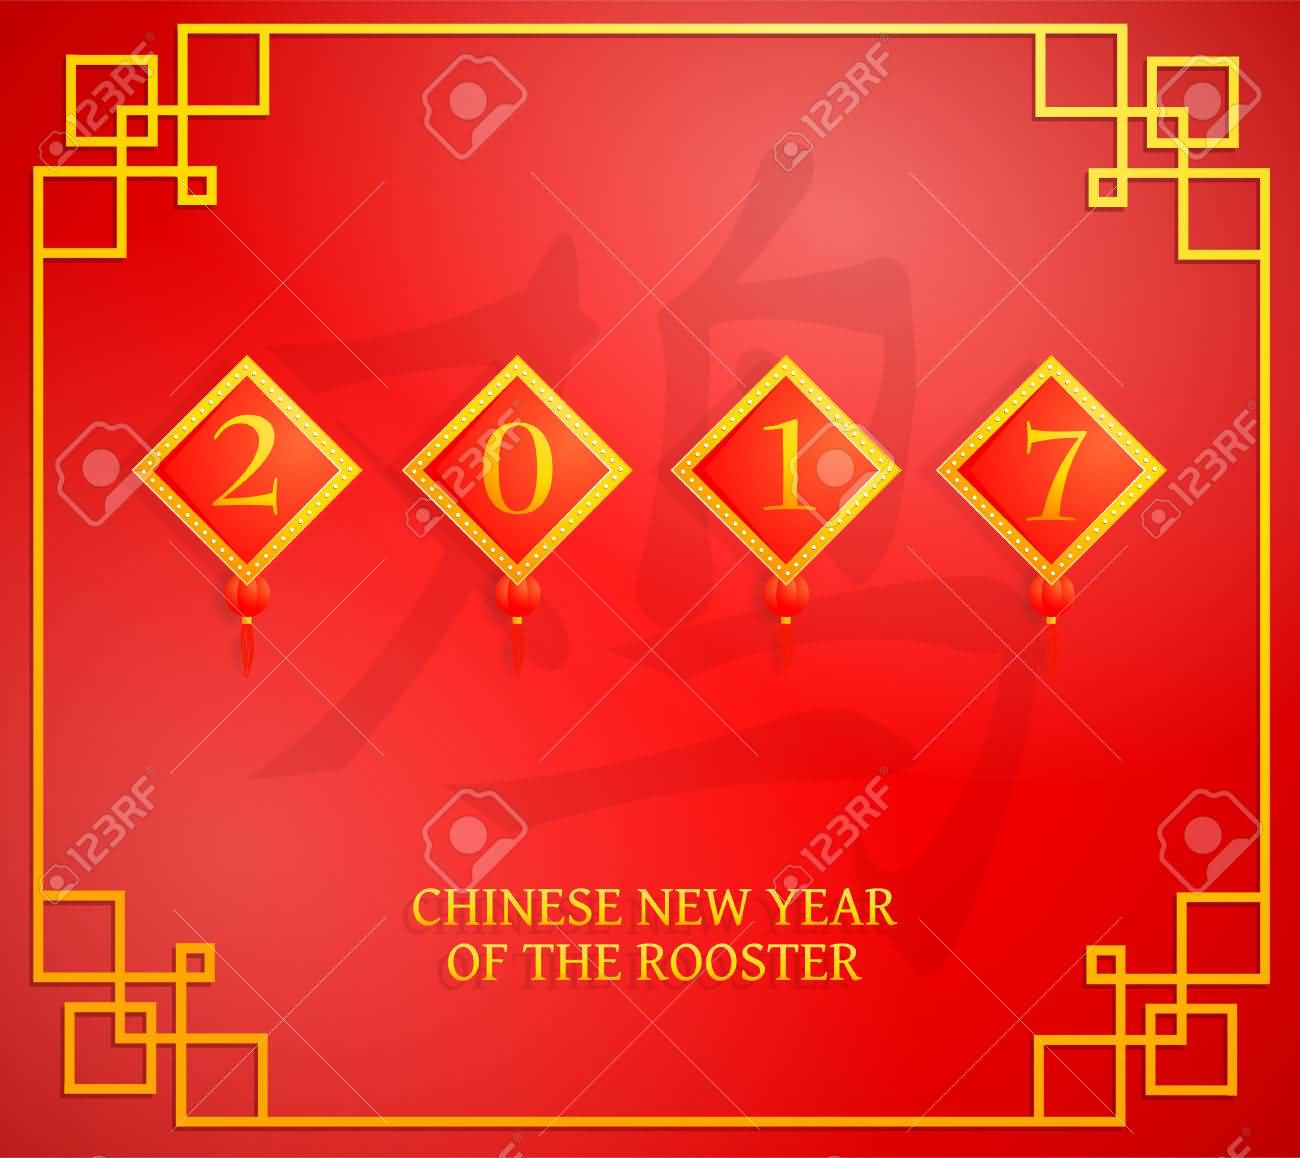 50 Happy Chinese New Year 2017 Wish Pictures And Photos